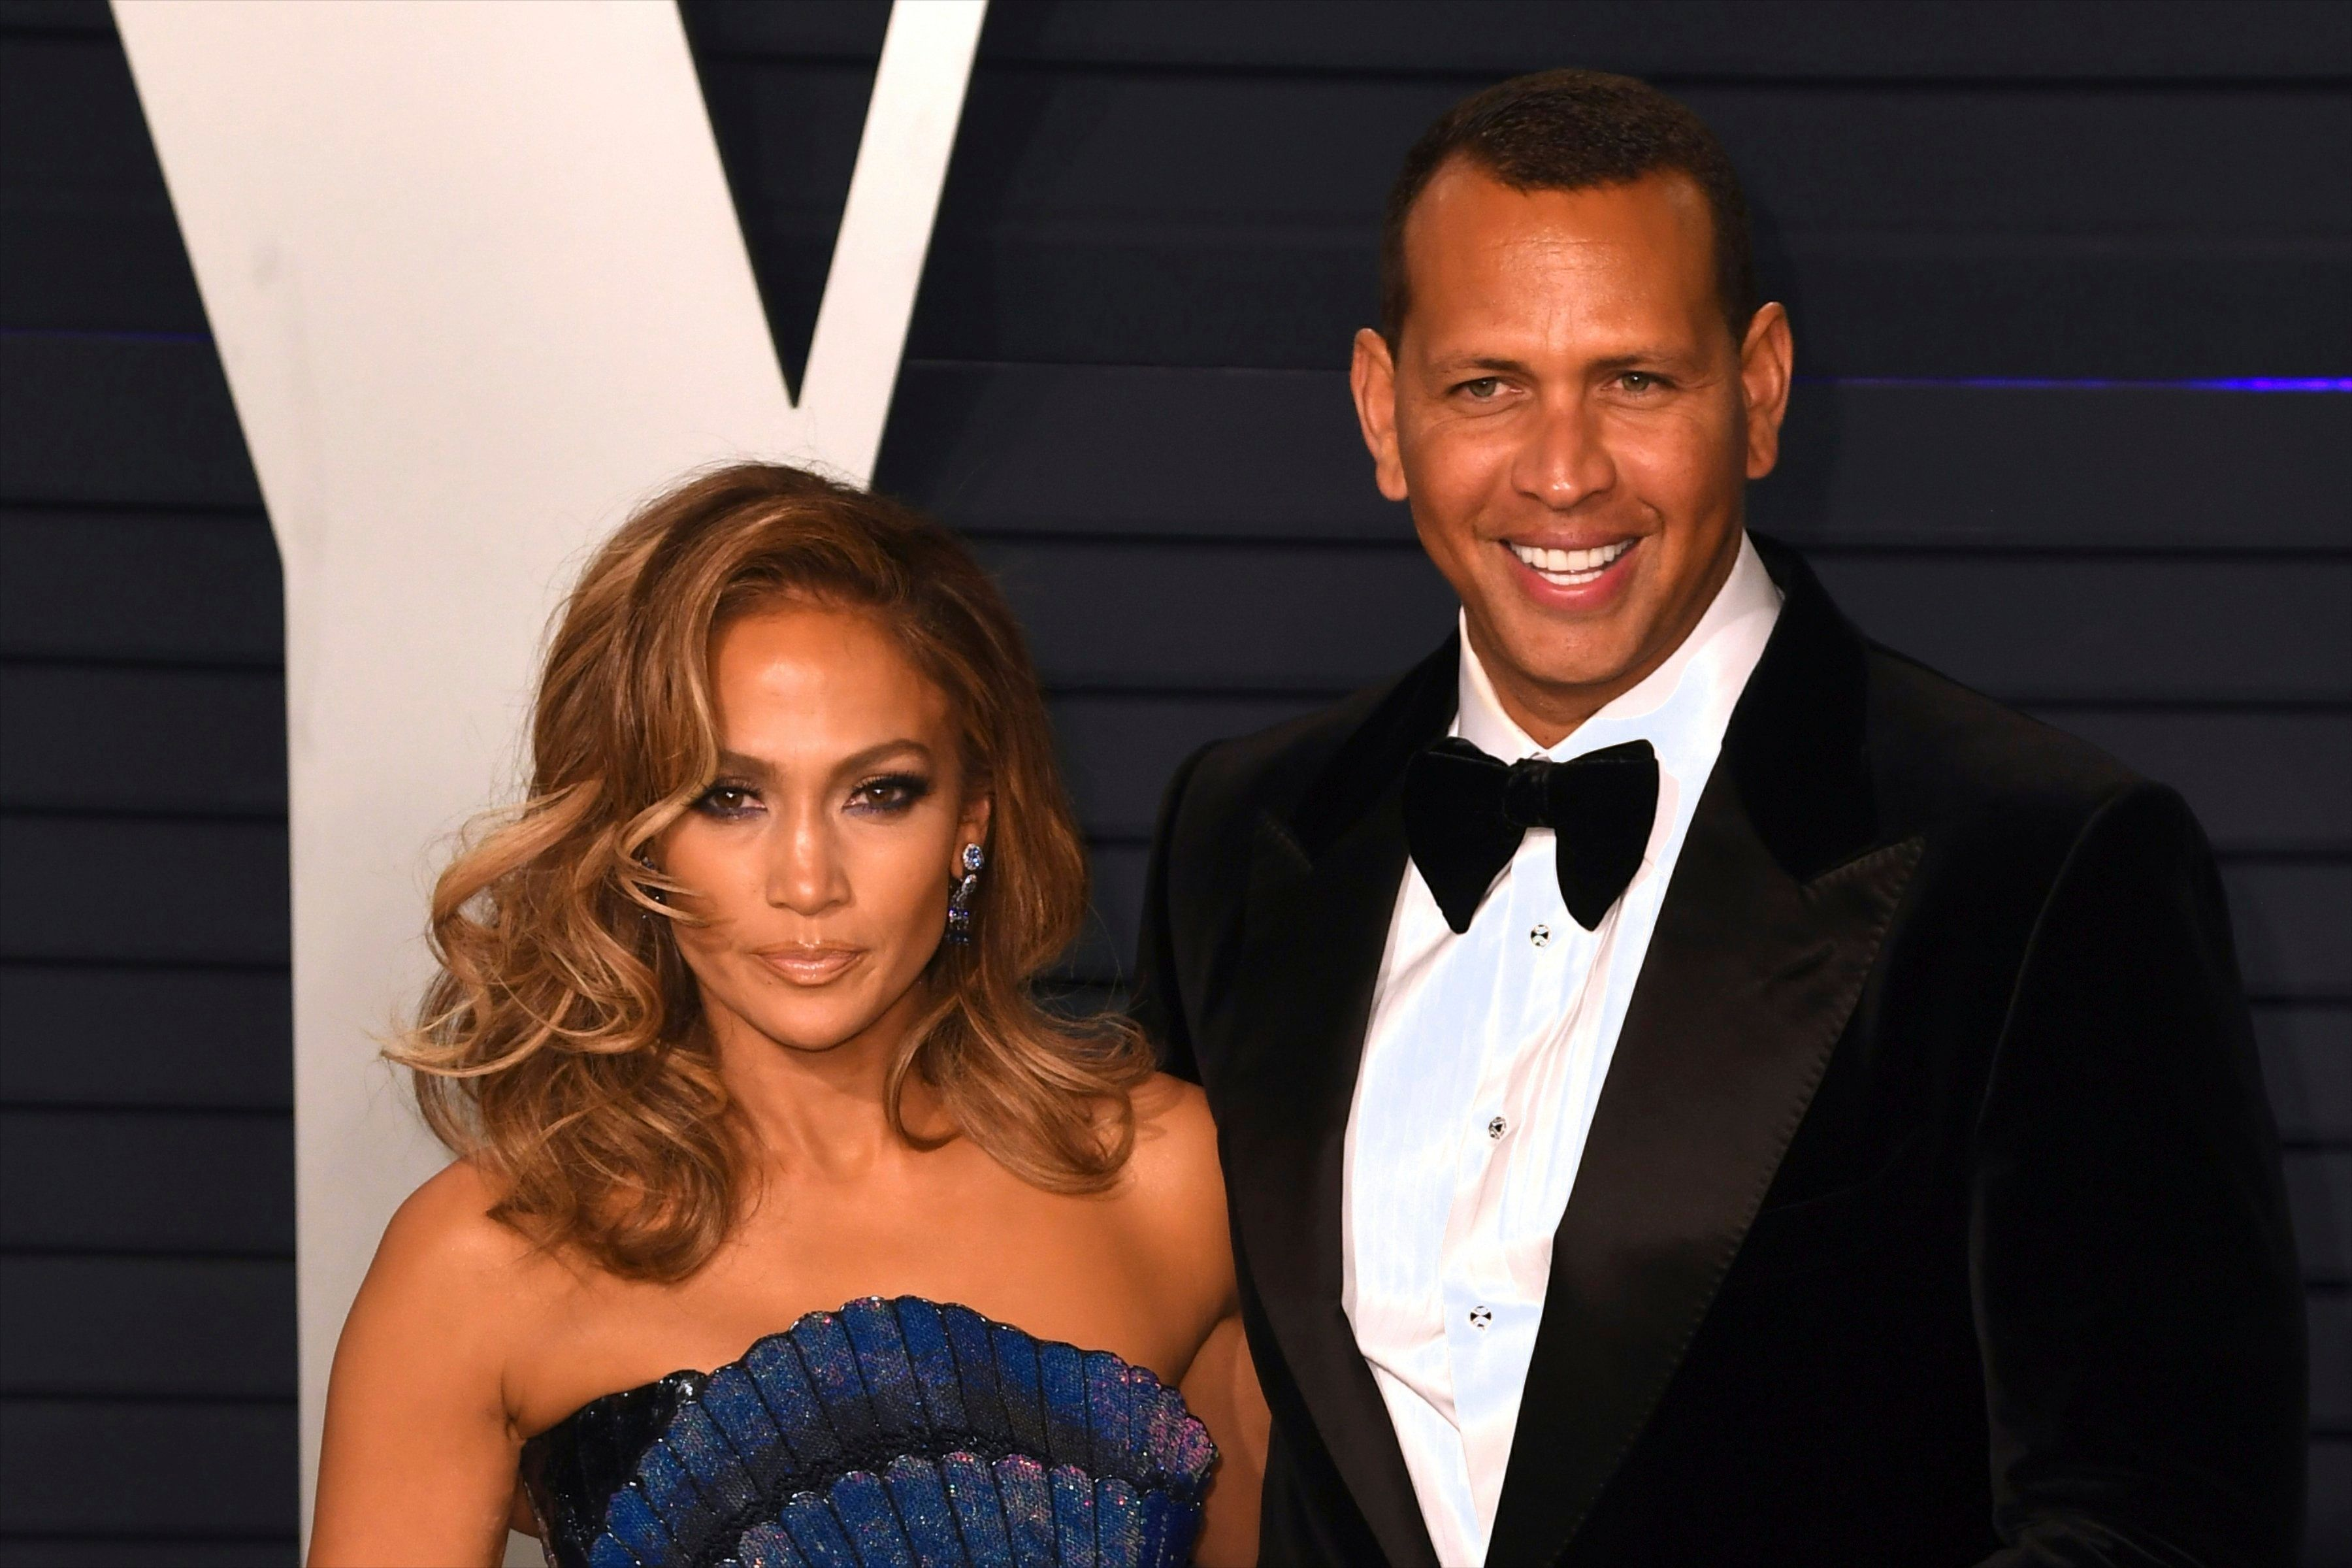 LOS ANGELES, CA - FEBRUARY 24: Jennifer Lopez and Alex Rodriguez at the Vanity Fair Oscar Party on February 24, 2019 in Los Angeles, California. Photo: imageSPACE /MediaPunch /IPX